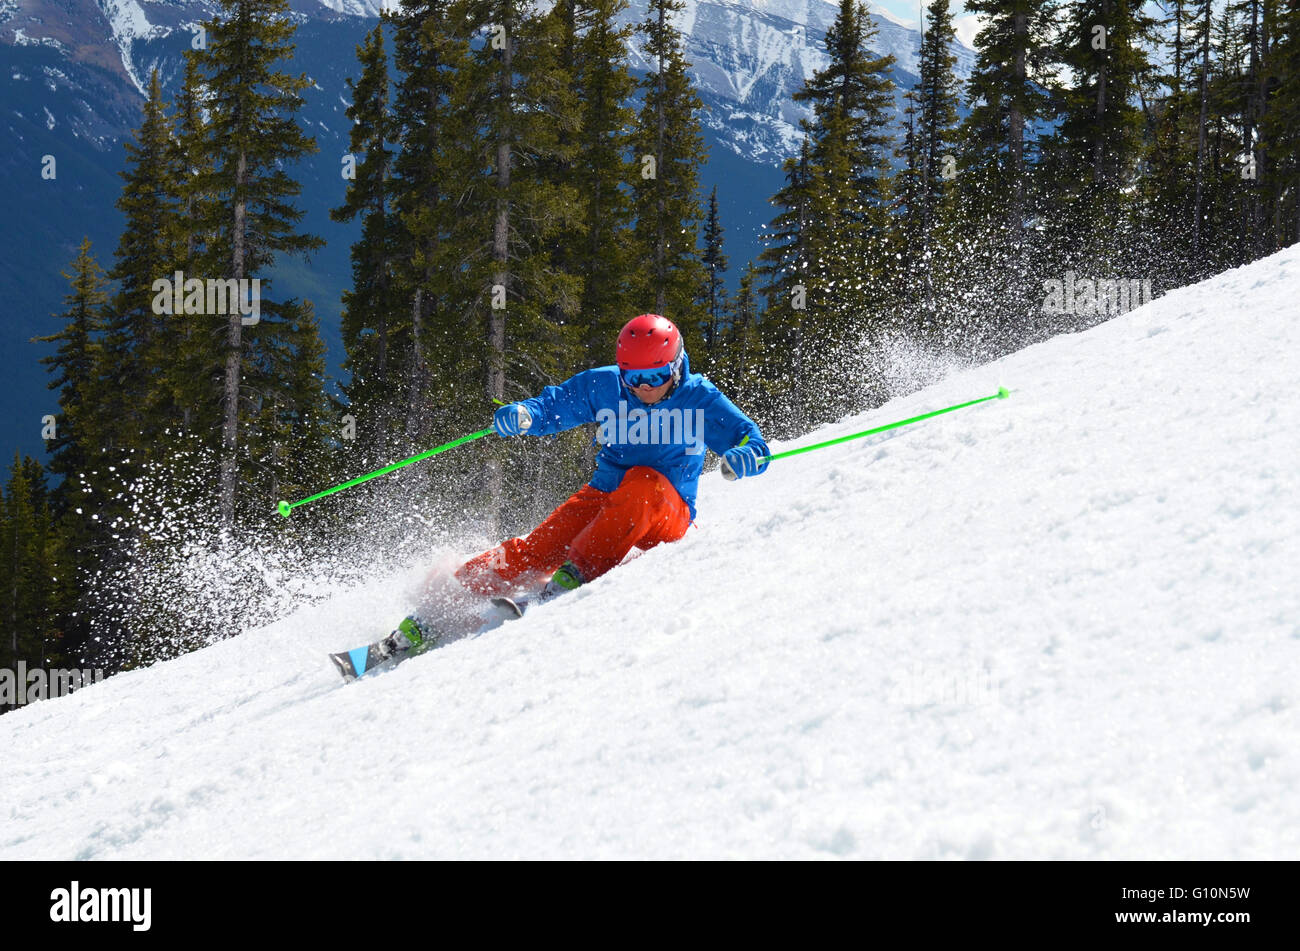 Skiing the Canadian Rockies, Alberta - Stock Image